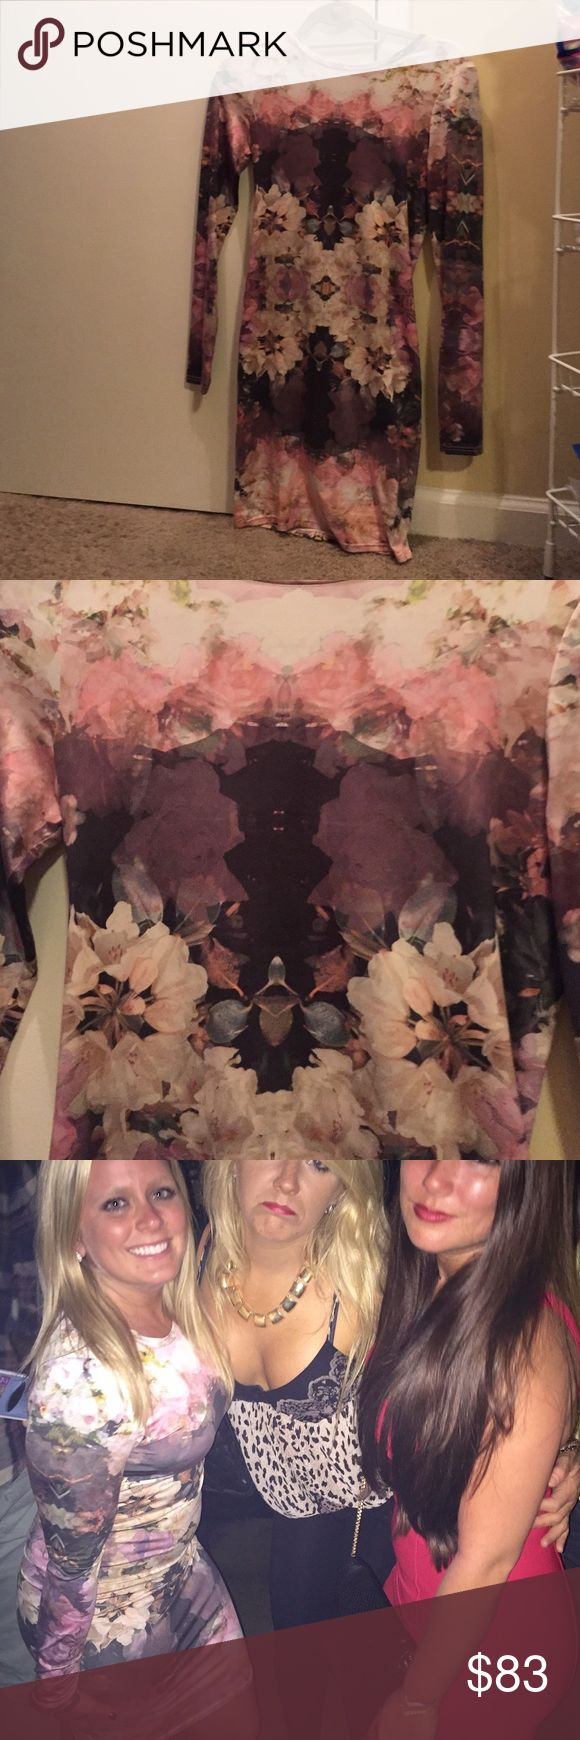 Topshop floral bodycon dress Gorgeous floral Topshop bodycon dress. Excellent condition! Super comfortable. Size US 6. Made of polyester and elastane. Topshop Dresses Mini